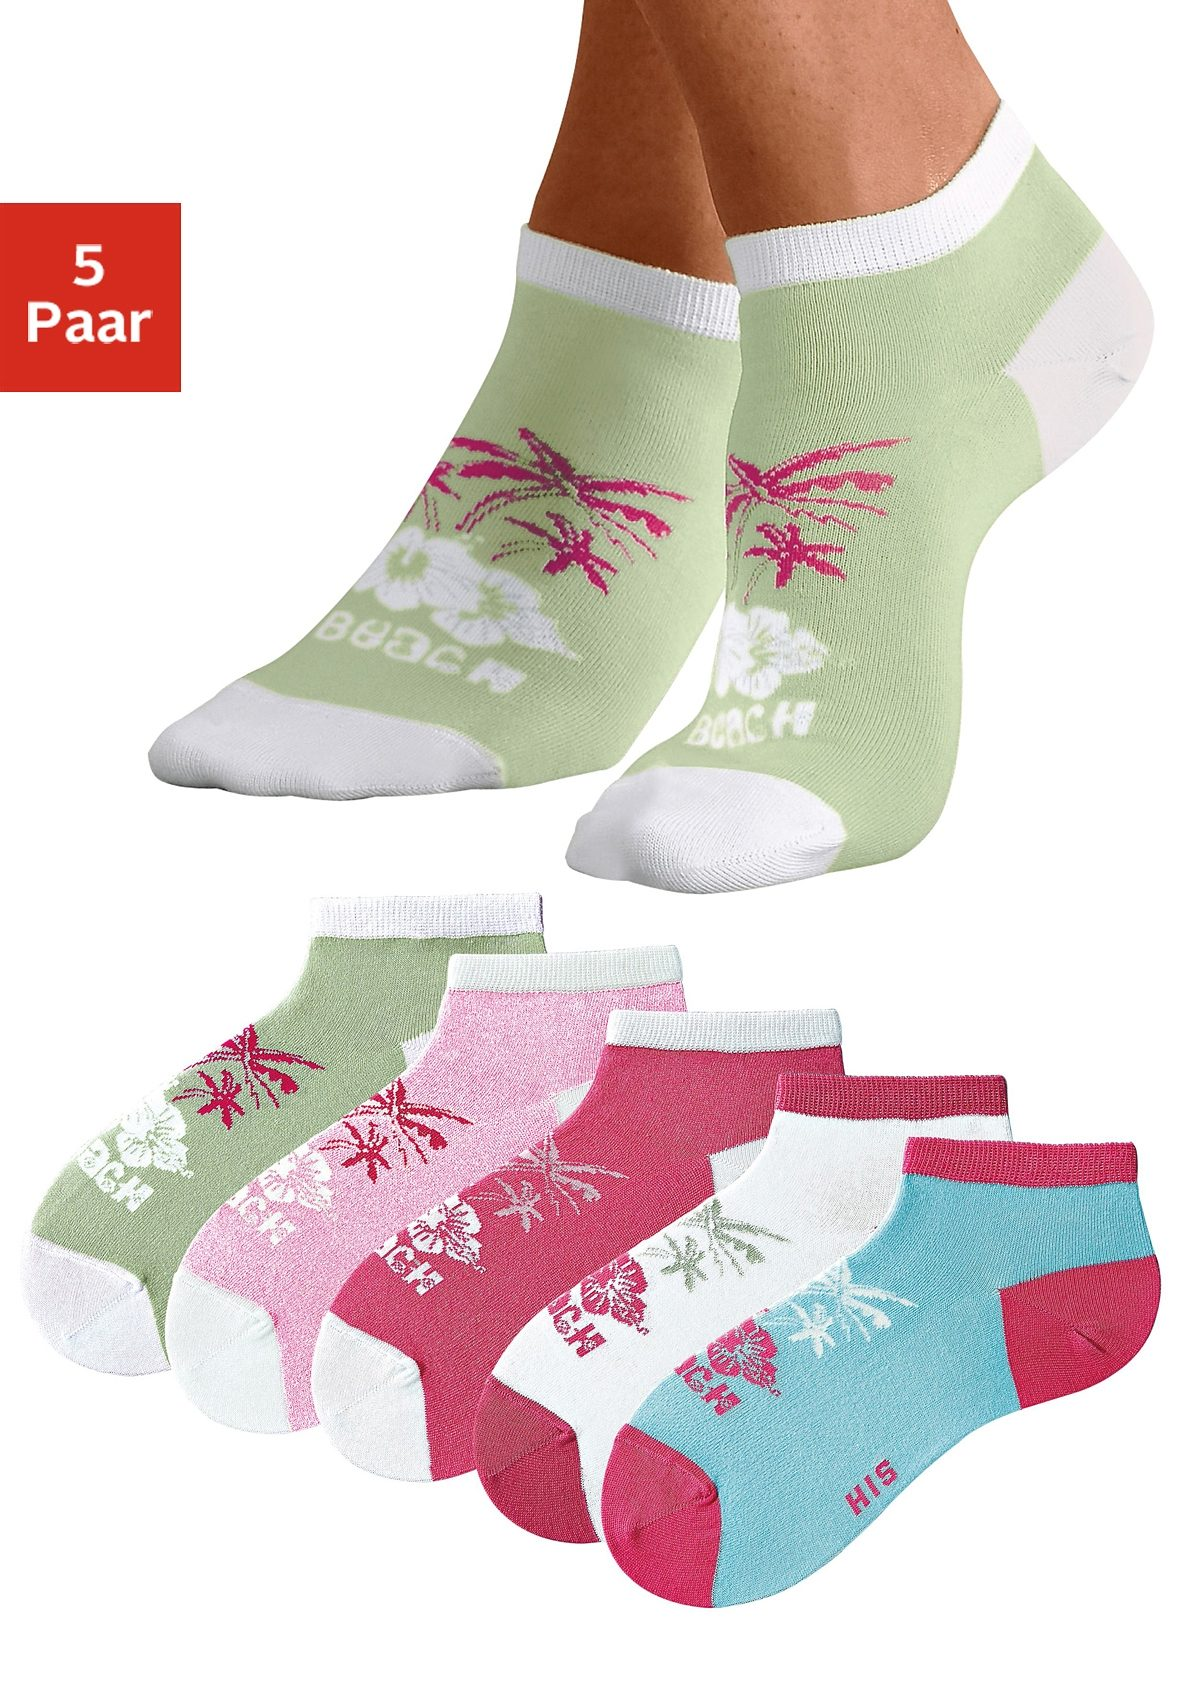 H.I.S Sneakersocken (5 Paar)